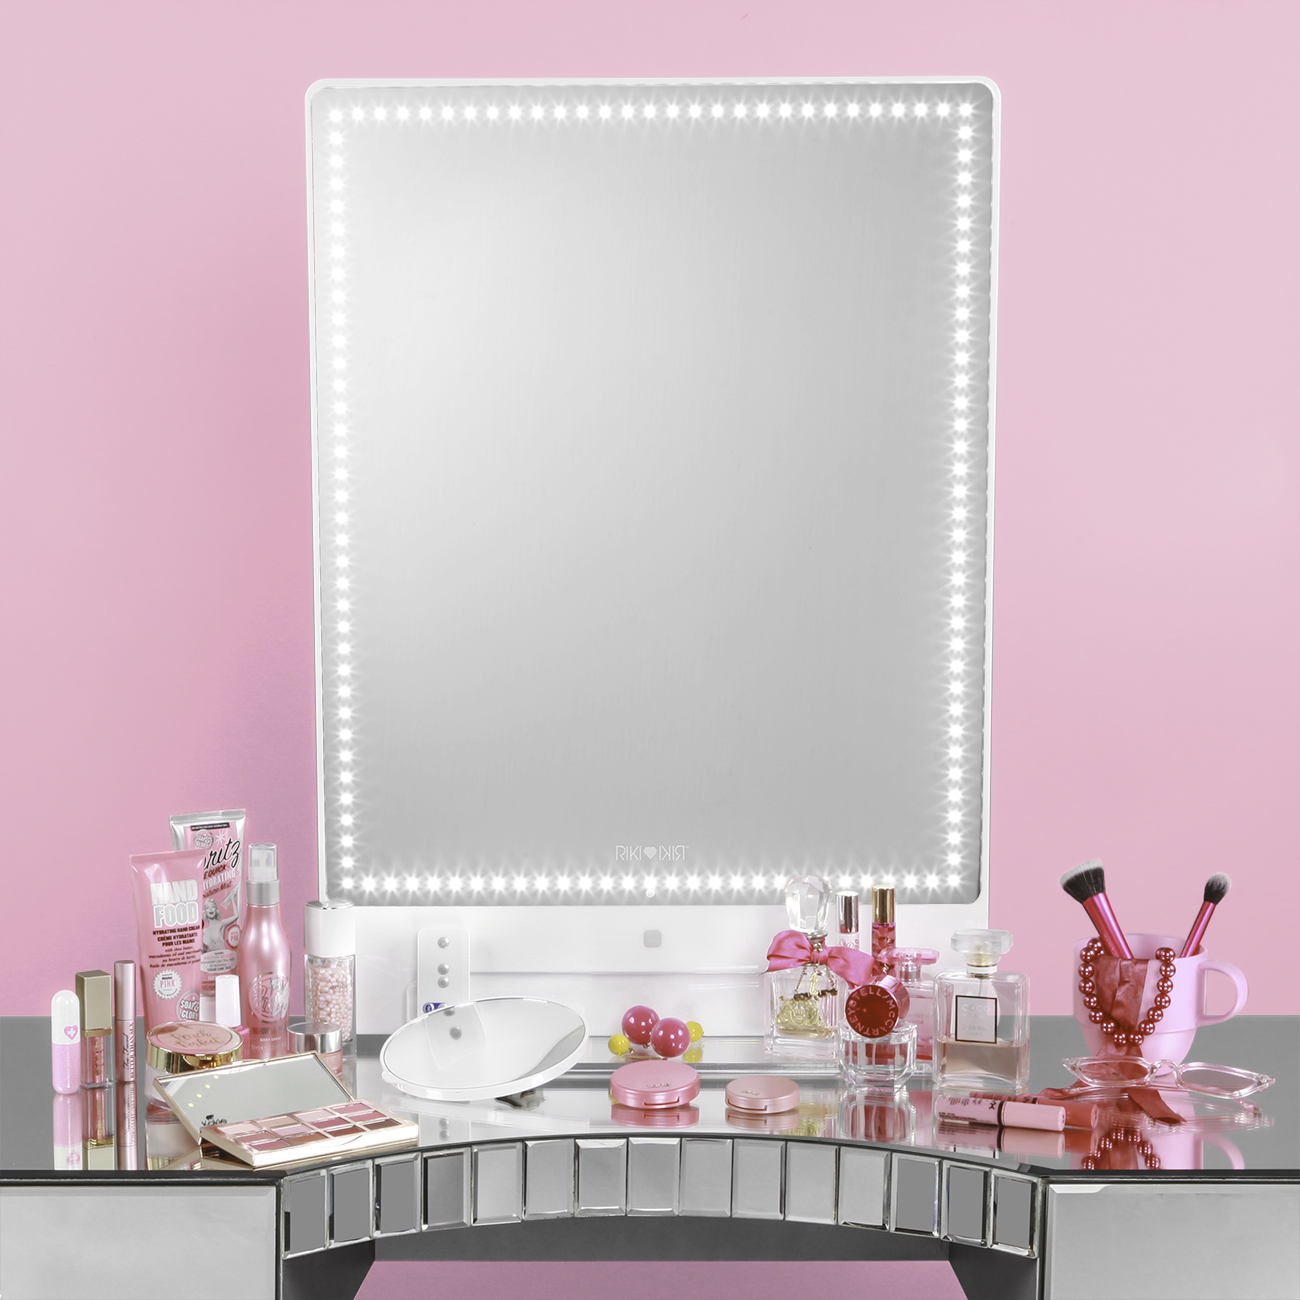 Riki Tall Riki Mirror Makeup Mirror With Lights Vanity Mirror